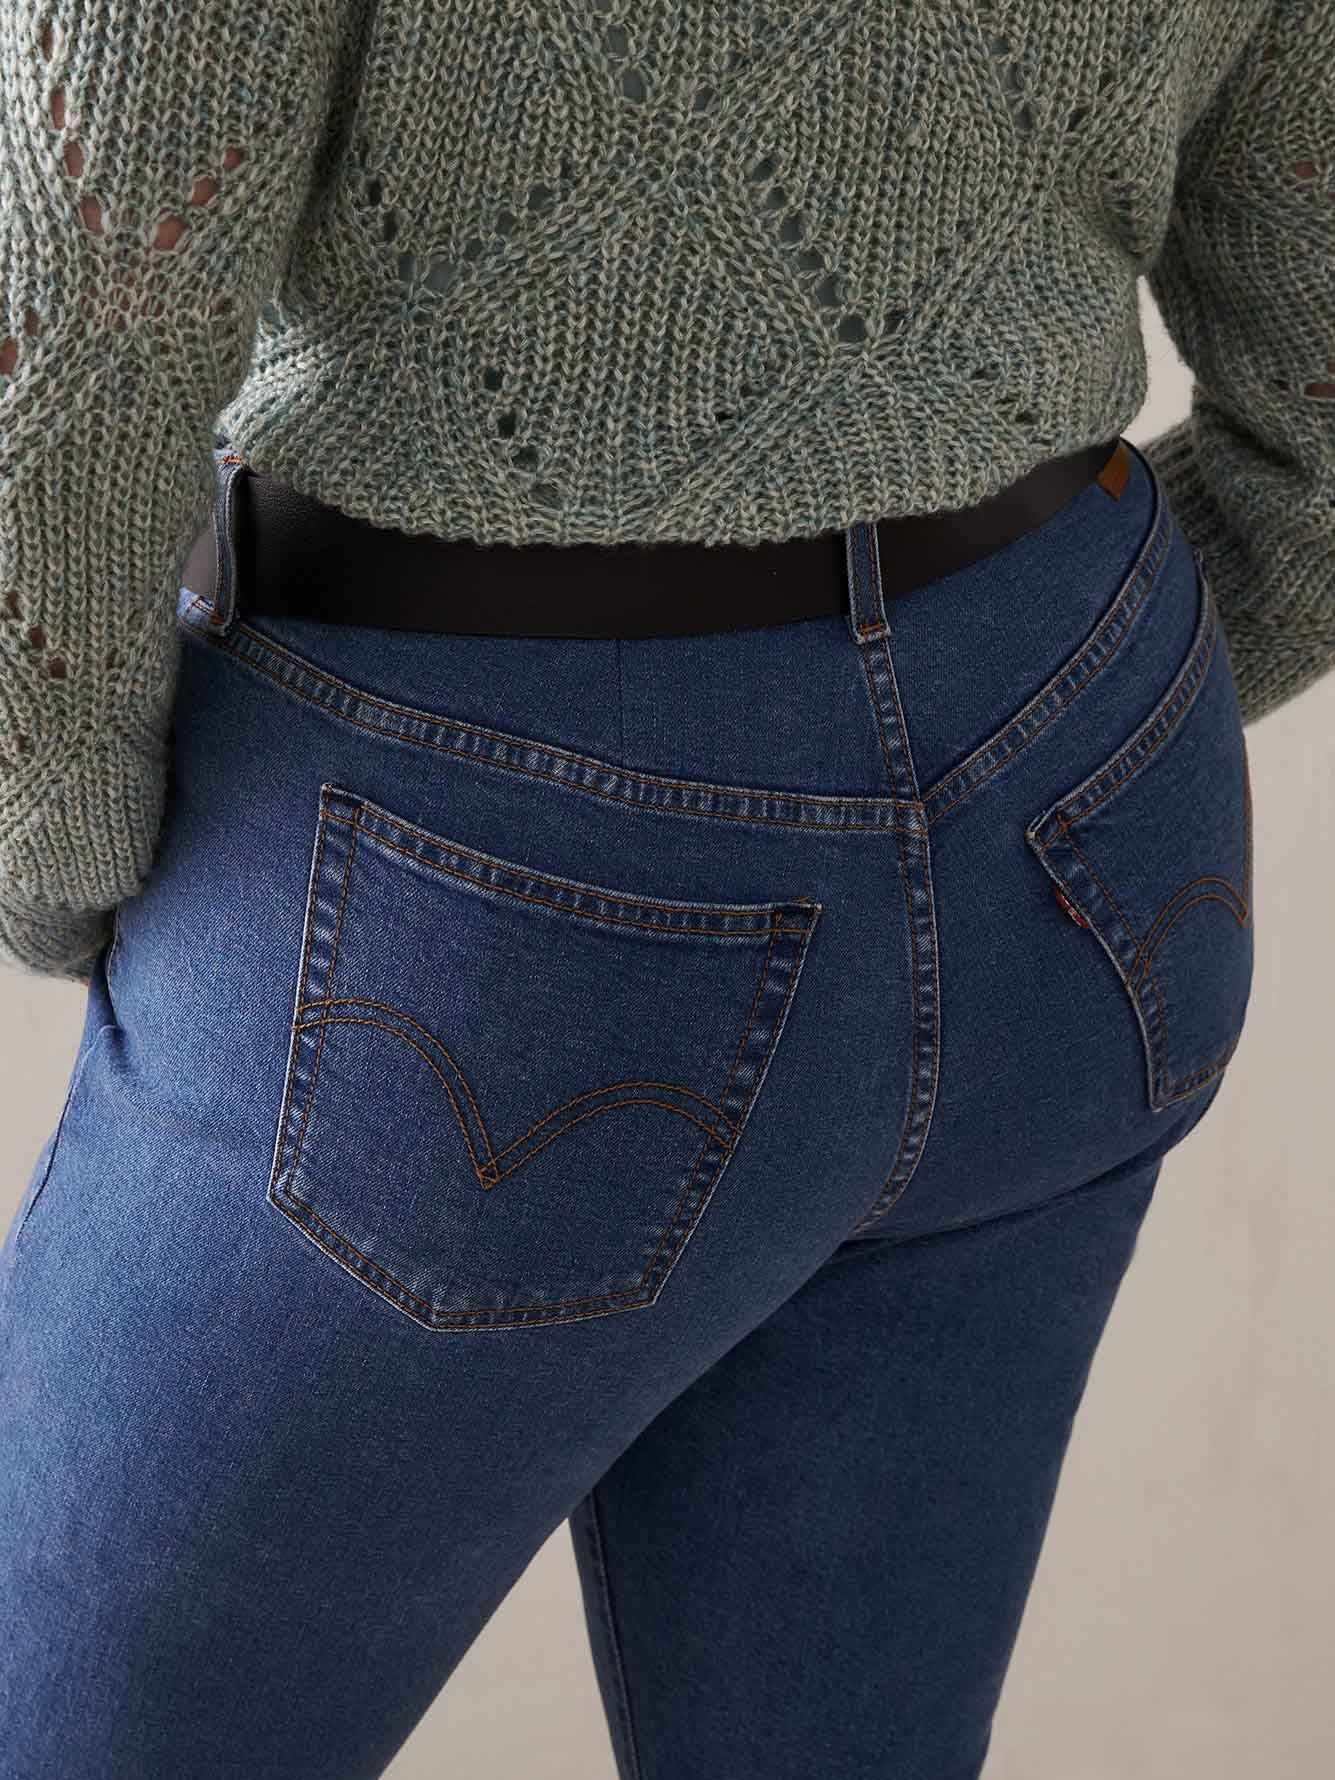 Jean skinny taille haute extensible Wedgie - Levi's Premium